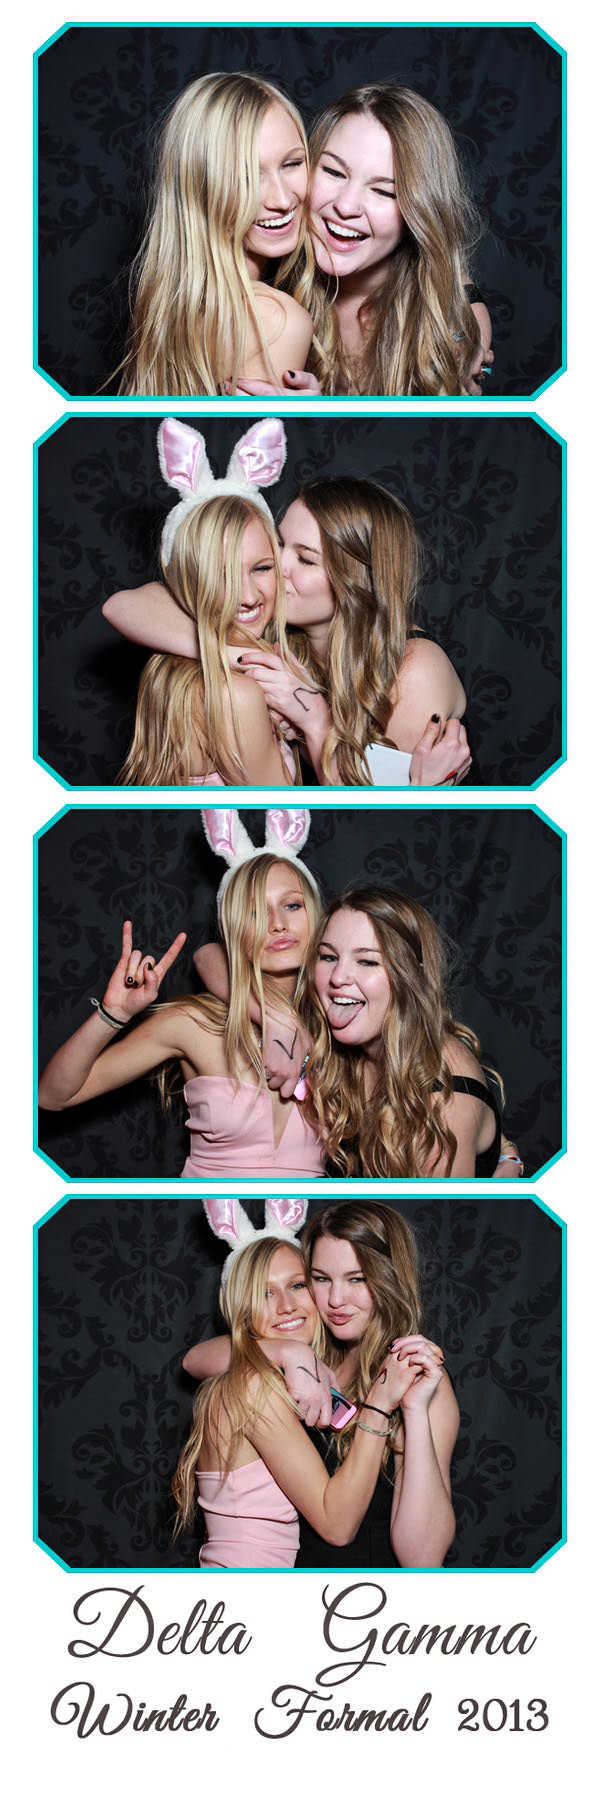 photo-booth-rental-sorority-Boulder-CO